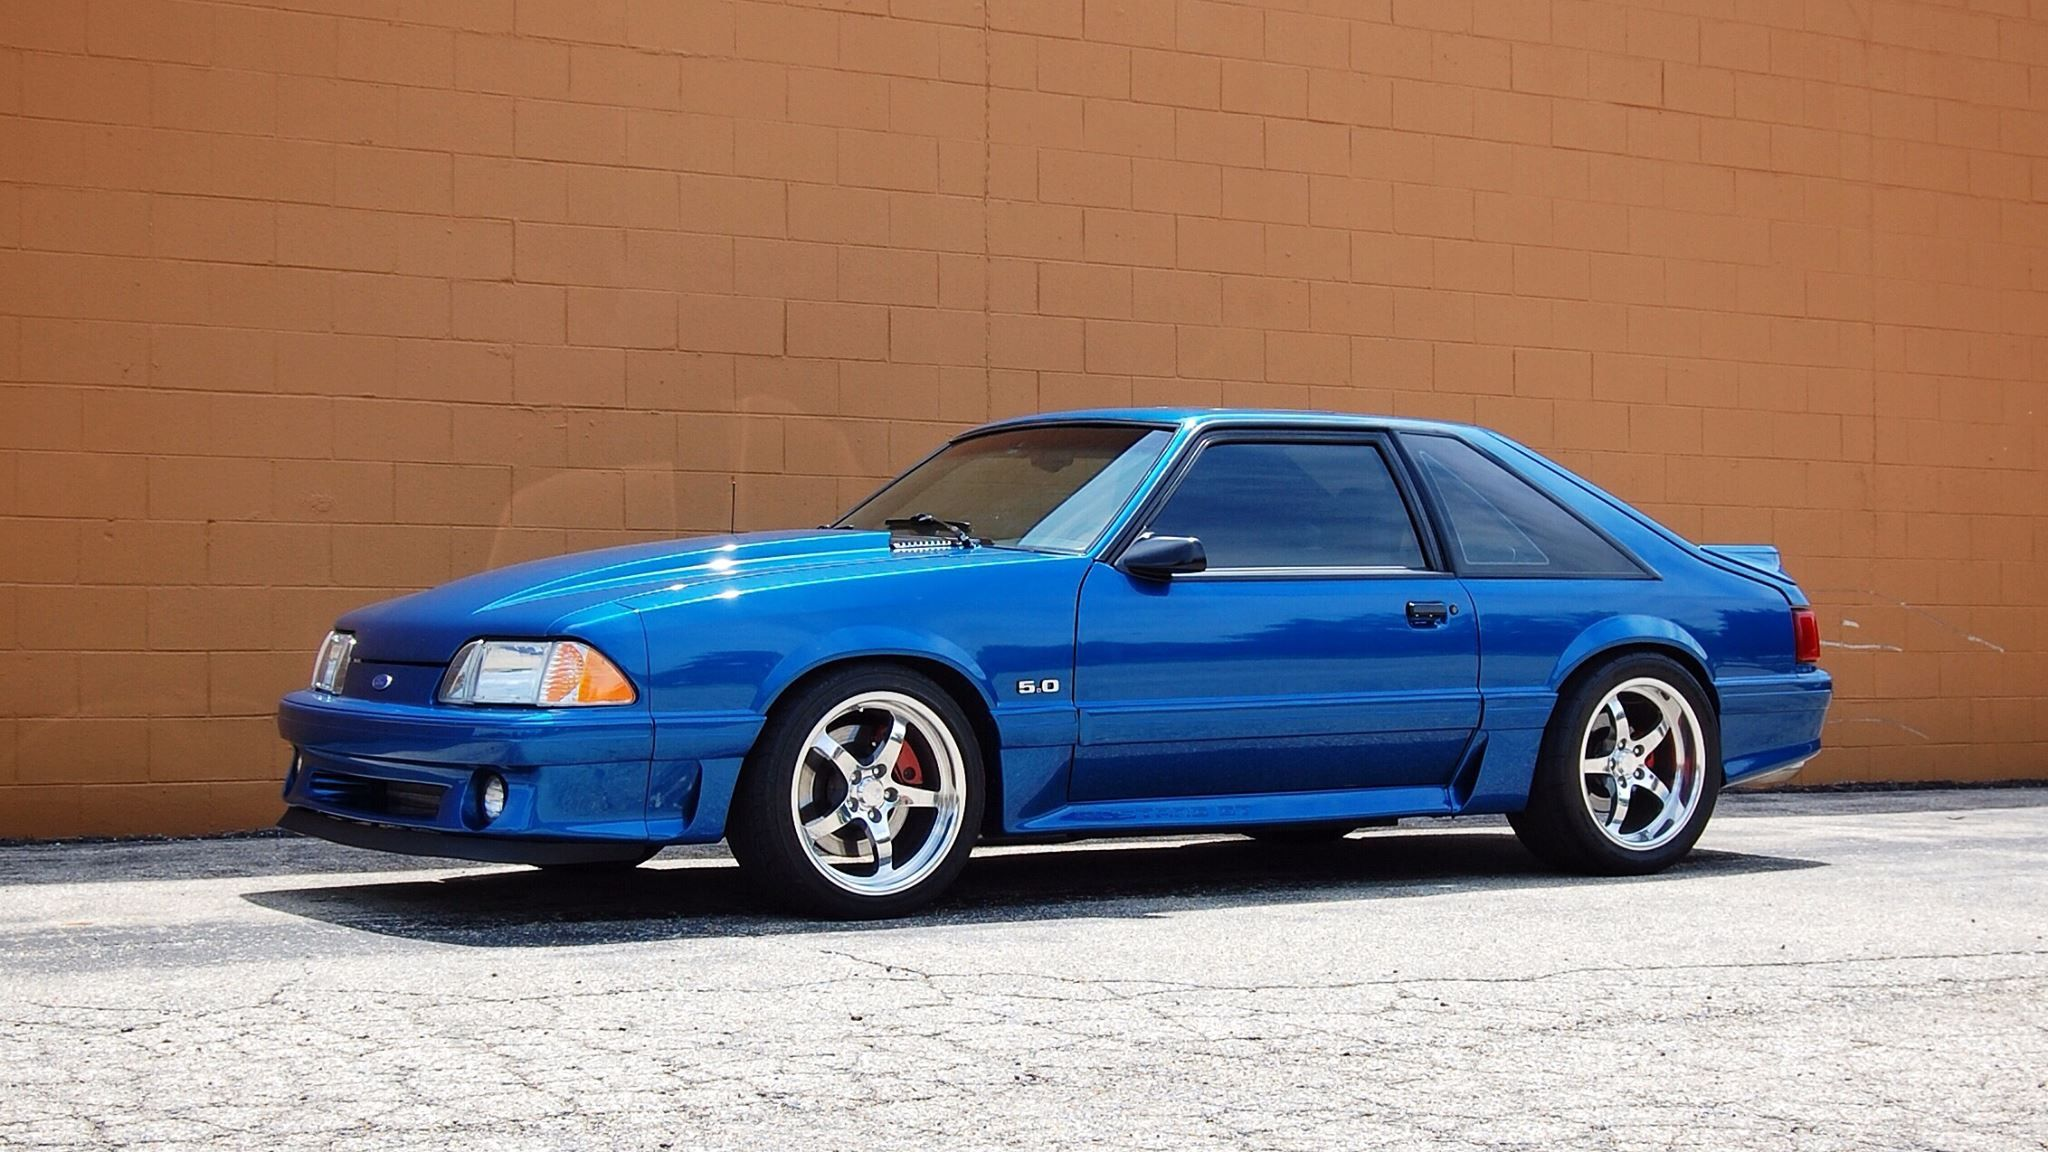 Mustang Gt Fox Body Fox Body Mustang Mustang Gt Ford Mustang